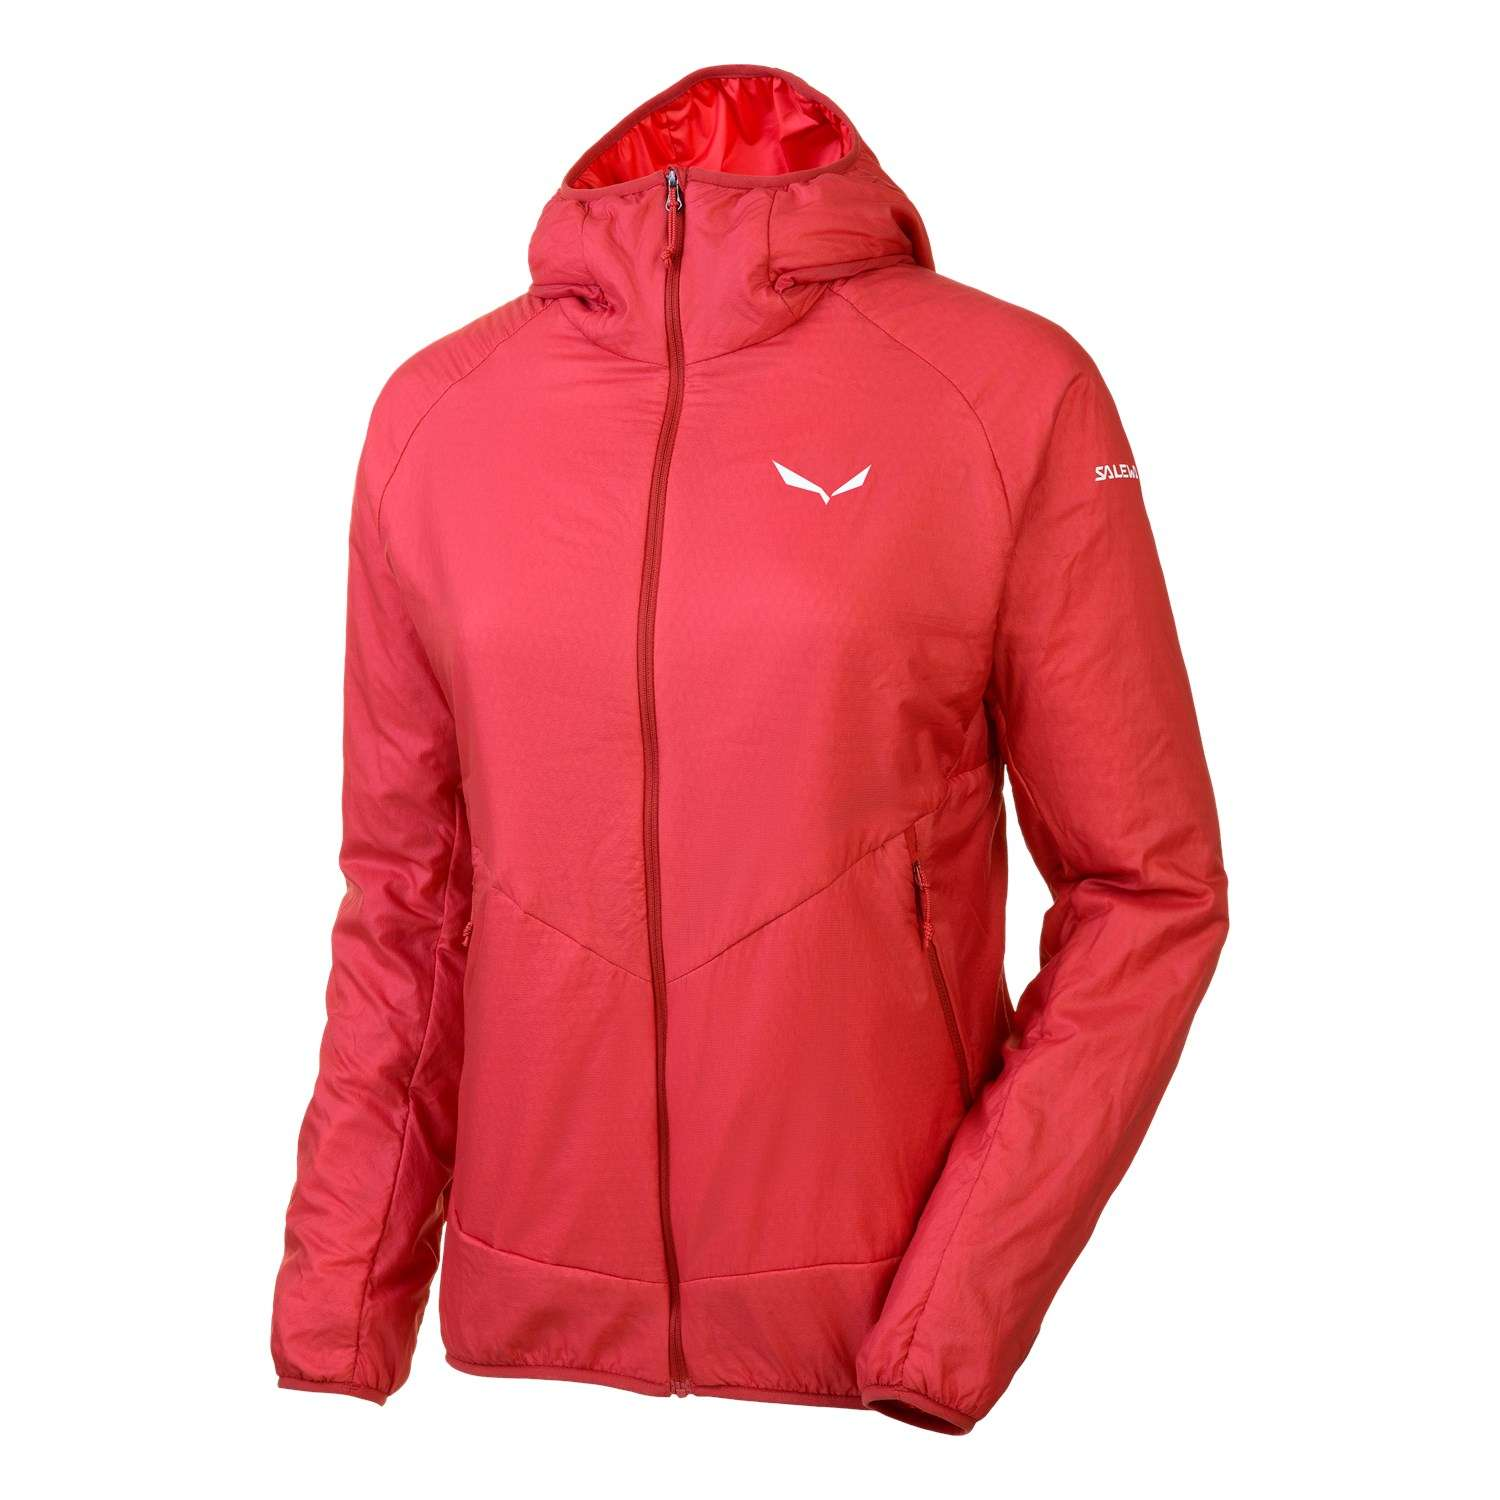 Sesvenna 2 Polartec® Alpha® Softshell Women's Jacket